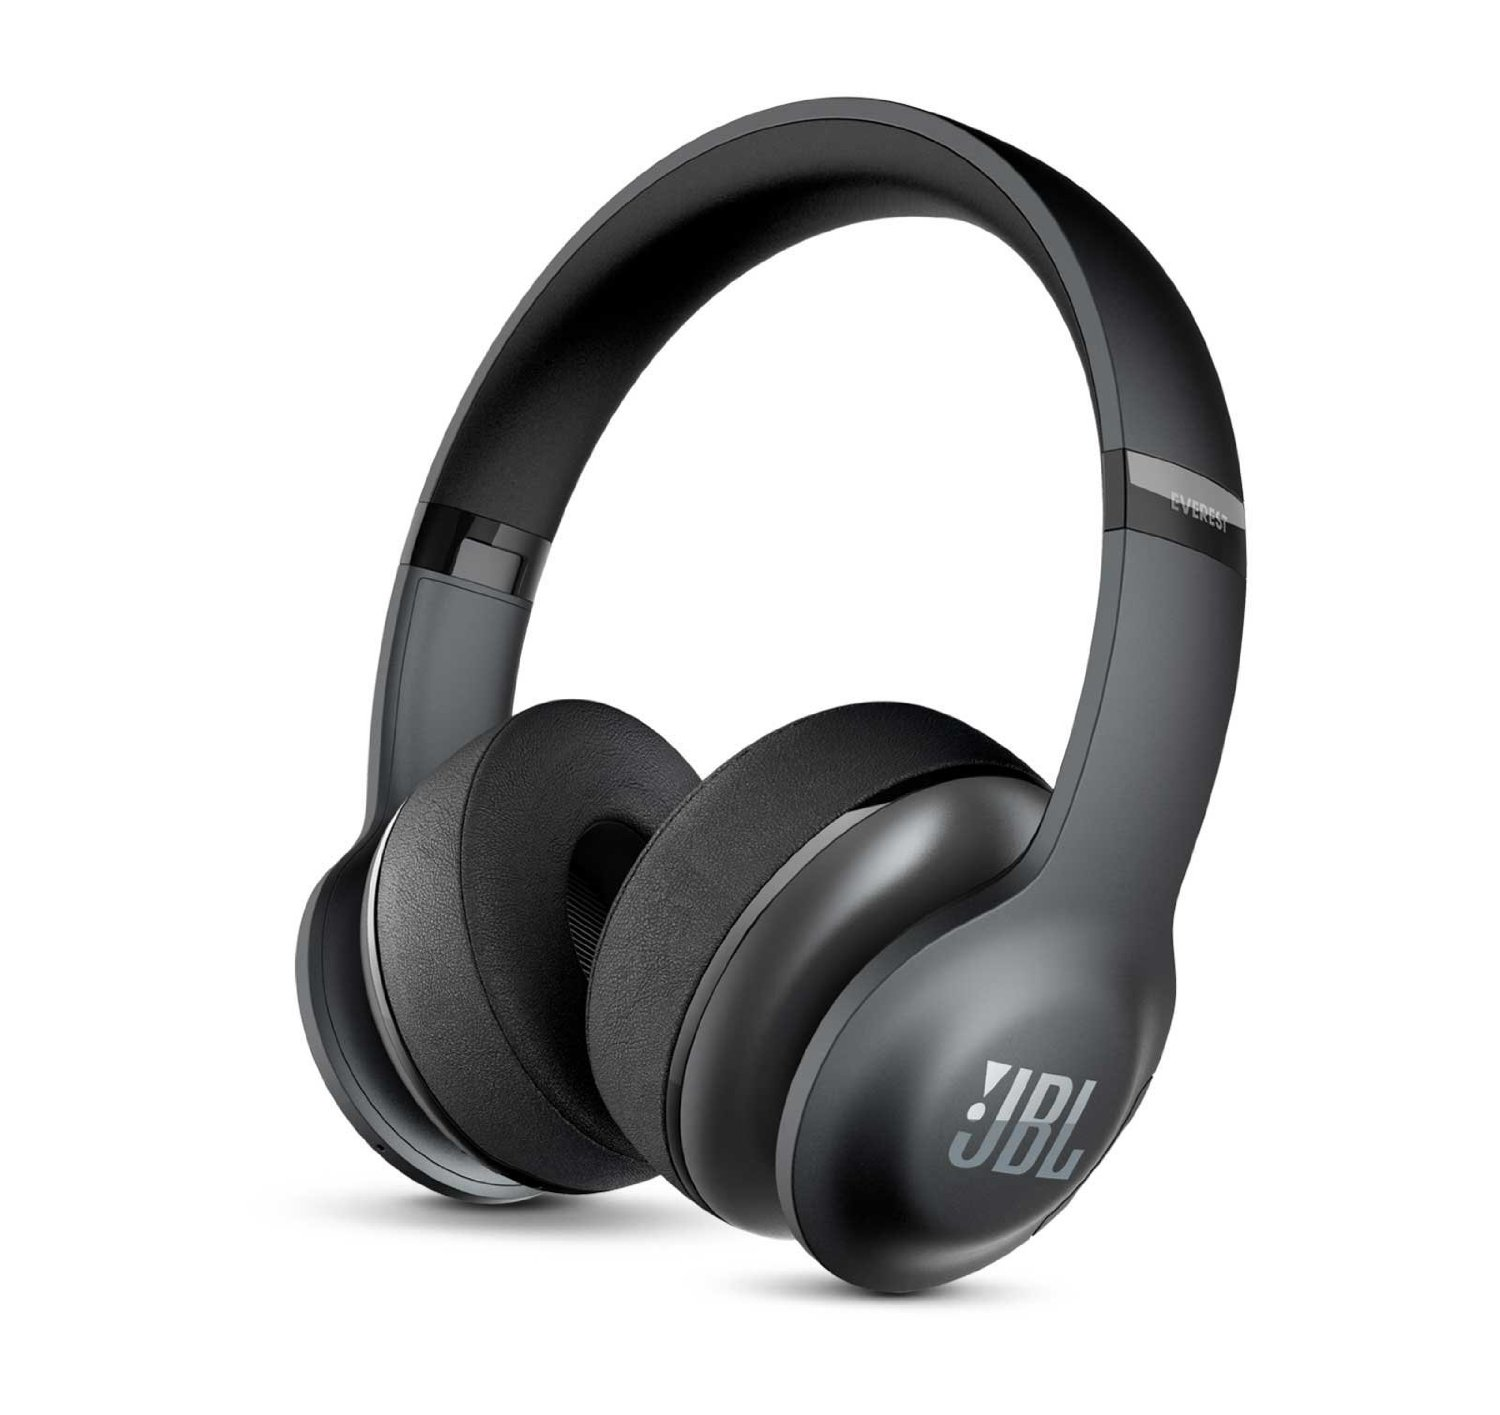 jbl everest 300 wireless bluetooth on ear headphones price in pakistan jbl in pakistan at. Black Bedroom Furniture Sets. Home Design Ideas